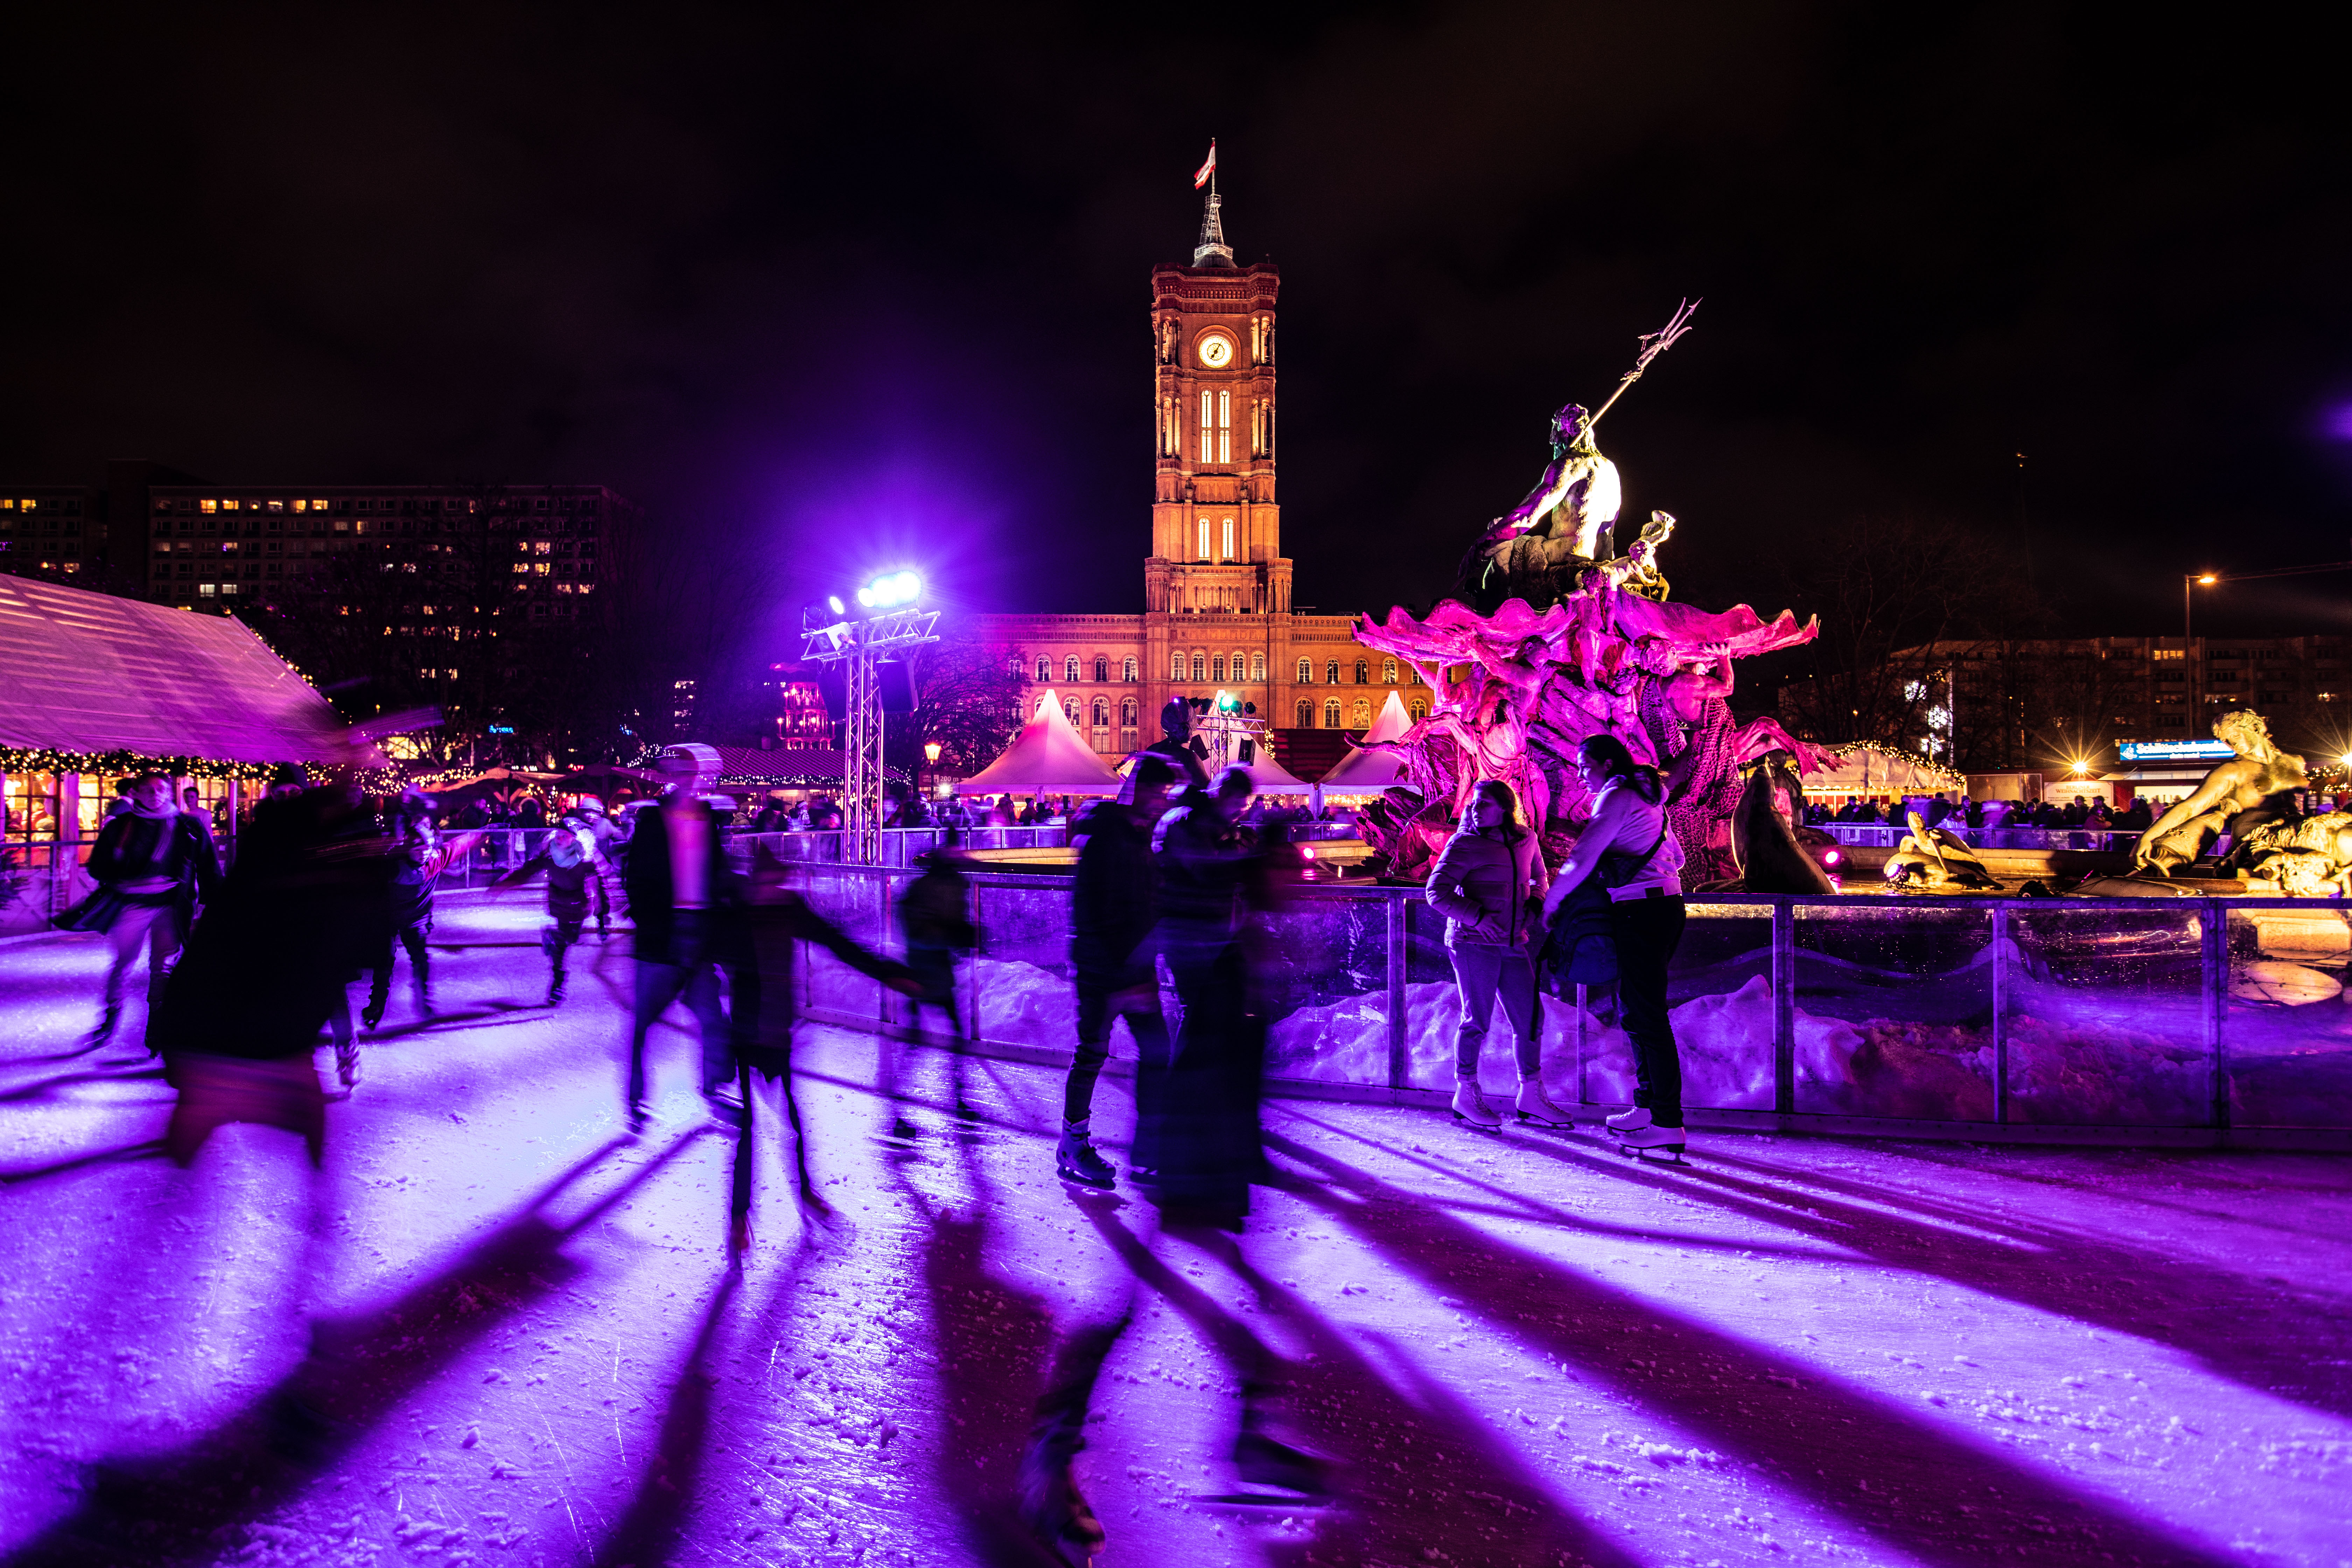 People enjoy ice-skating at the Christmas market in front of Berlin's city hall 'Rotes Rathaus' at the Alexanderplatz in Berlin, Germany, 25 December 2019.Christmas in Berlin, Germany - 25 Dec 2019